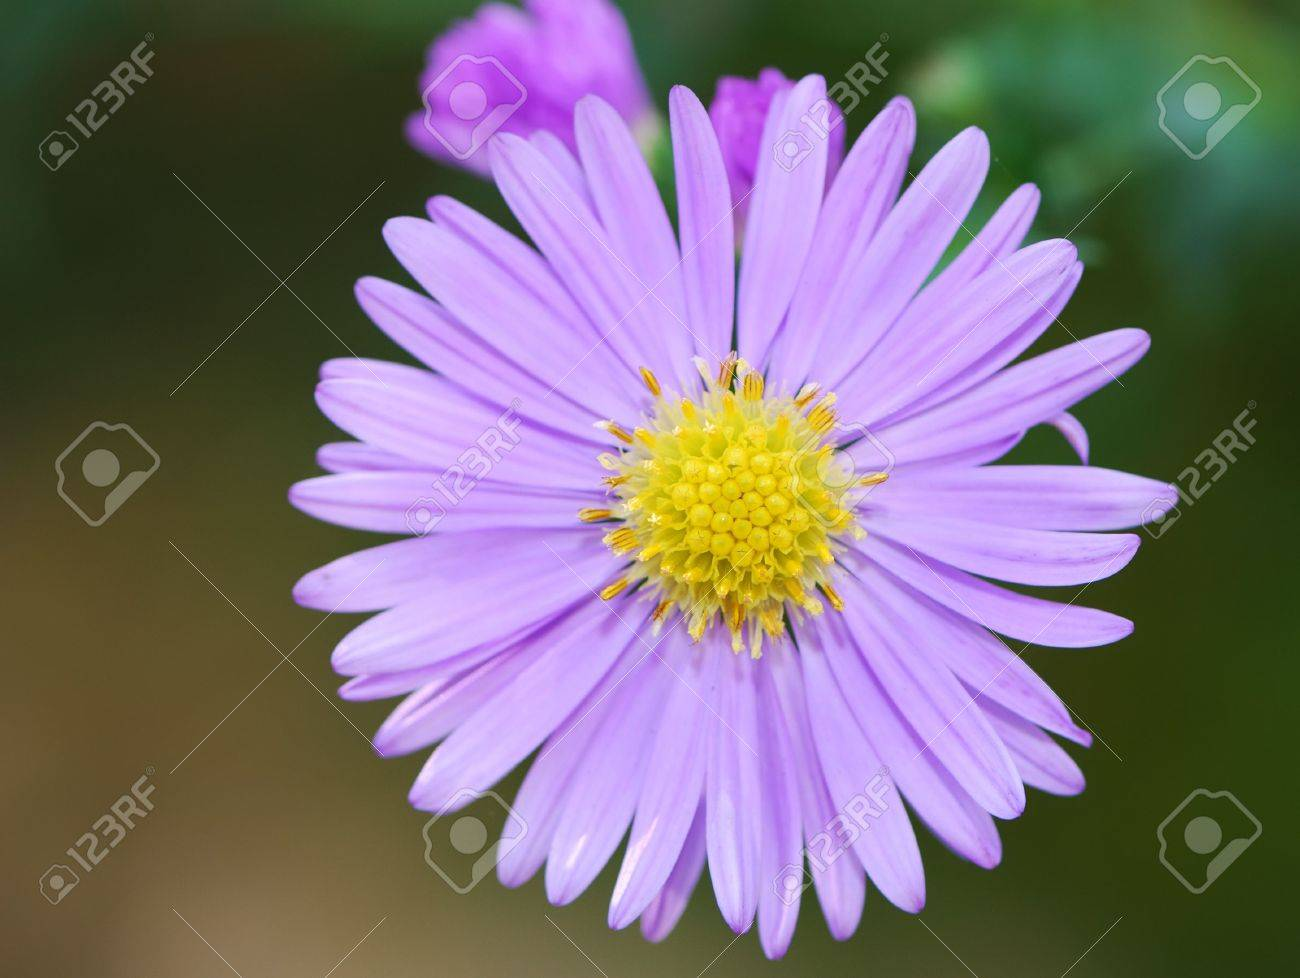 closeup of a purple aster flower stock photo, picture and royalty, Beautiful flower